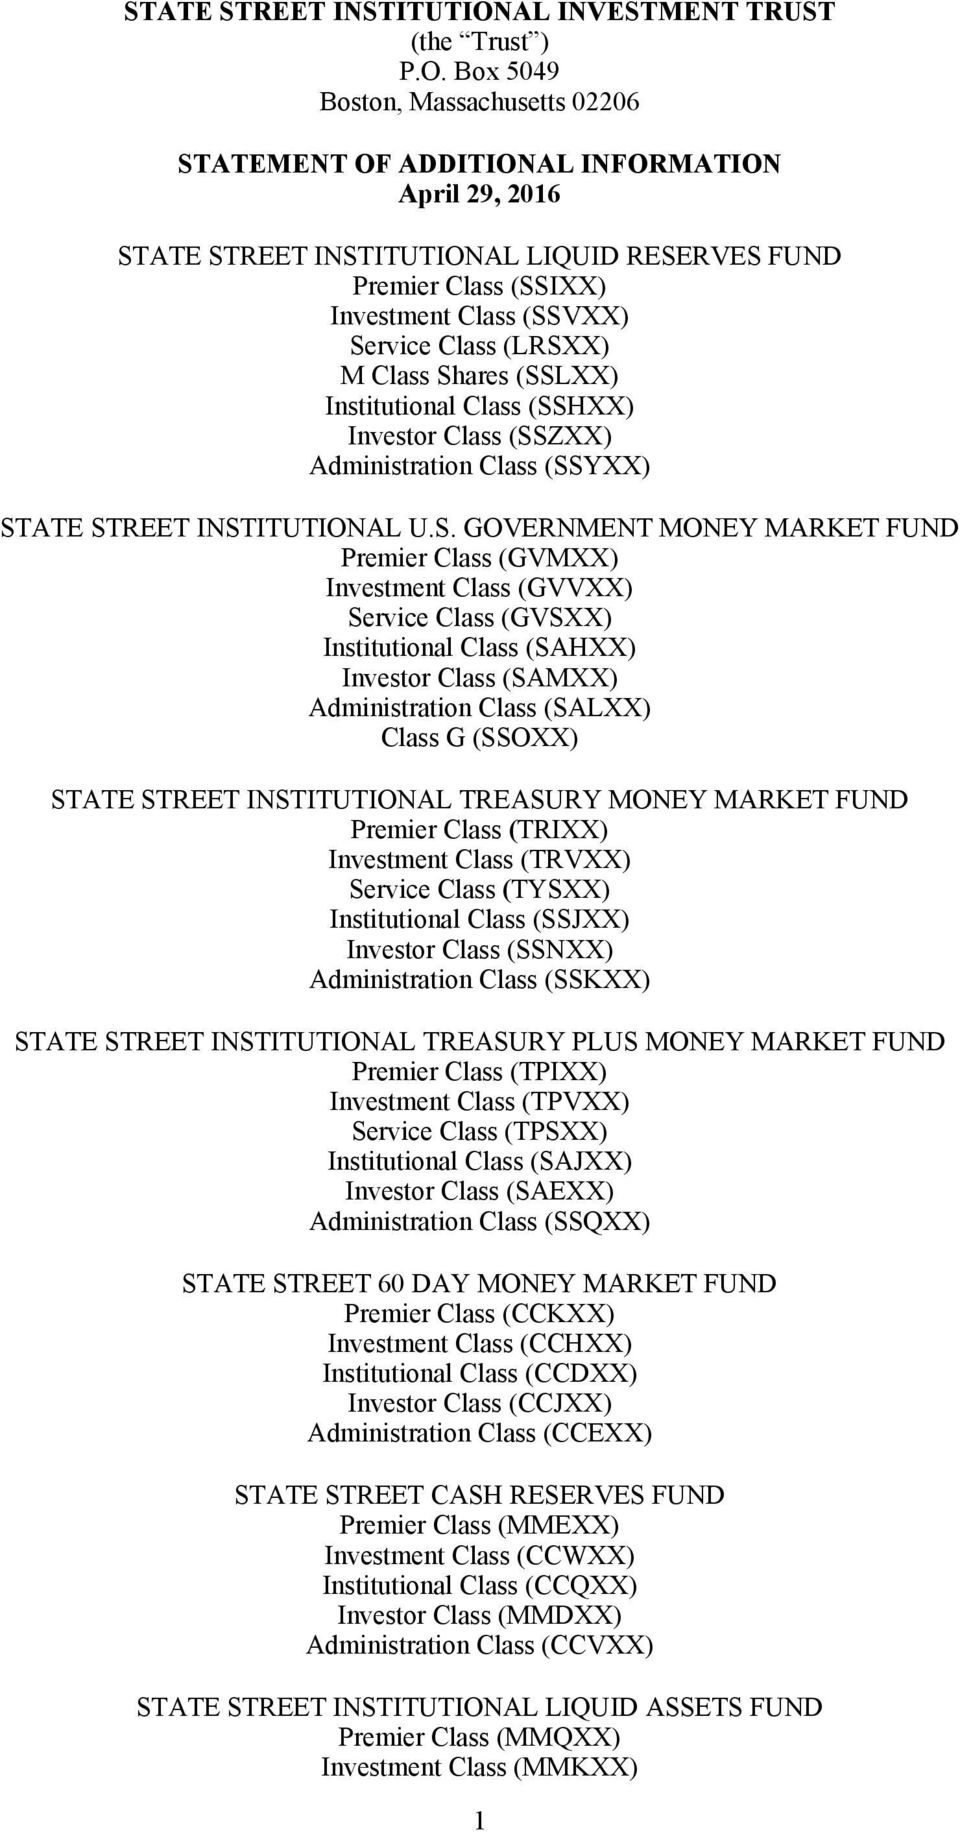 State Street Institutional Investment Trust SUPPLEMENT DATED